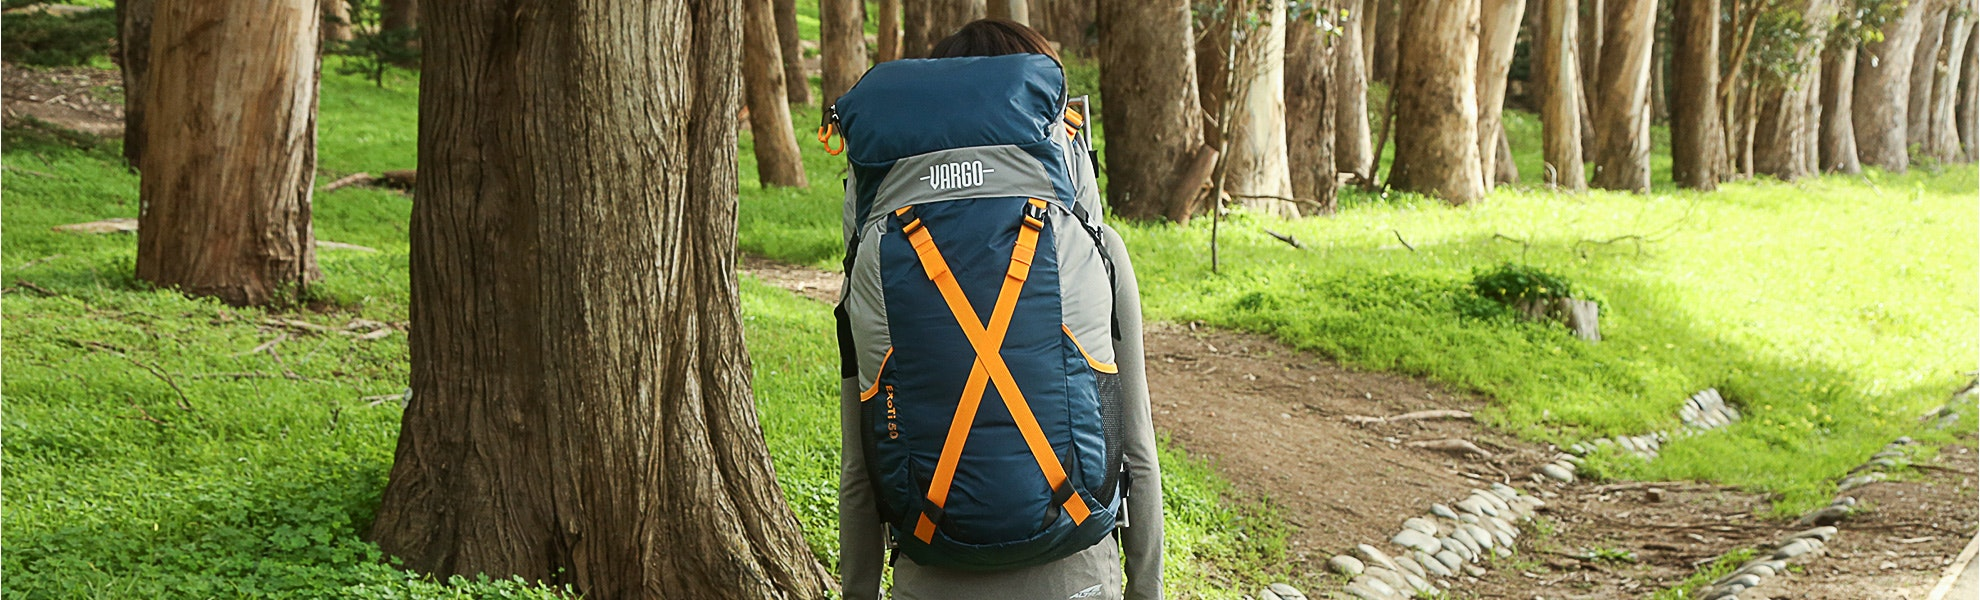 Vargo ExoTi 50 Backpack